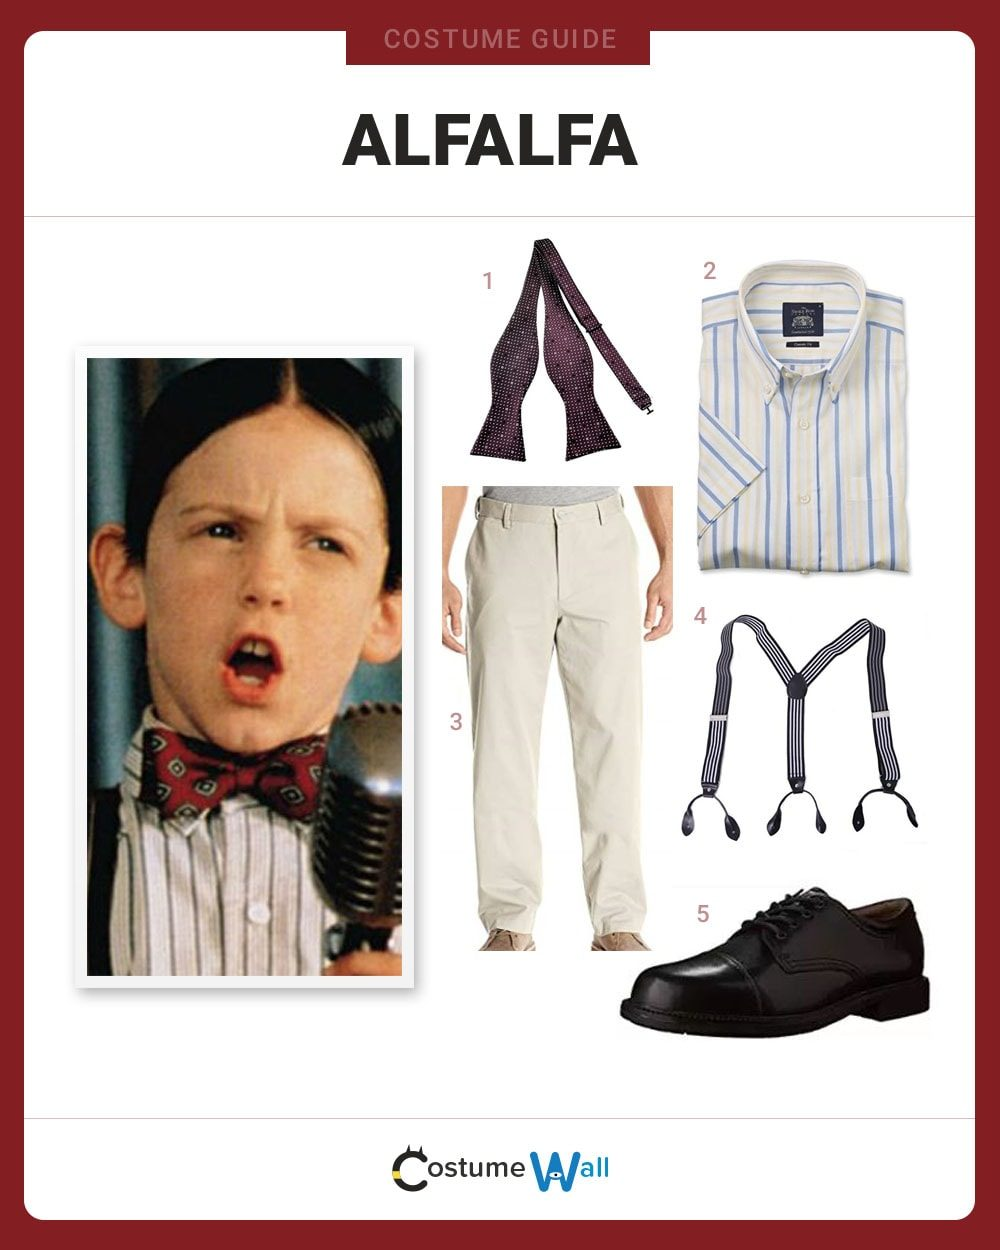 Alfalfa Costume Guide